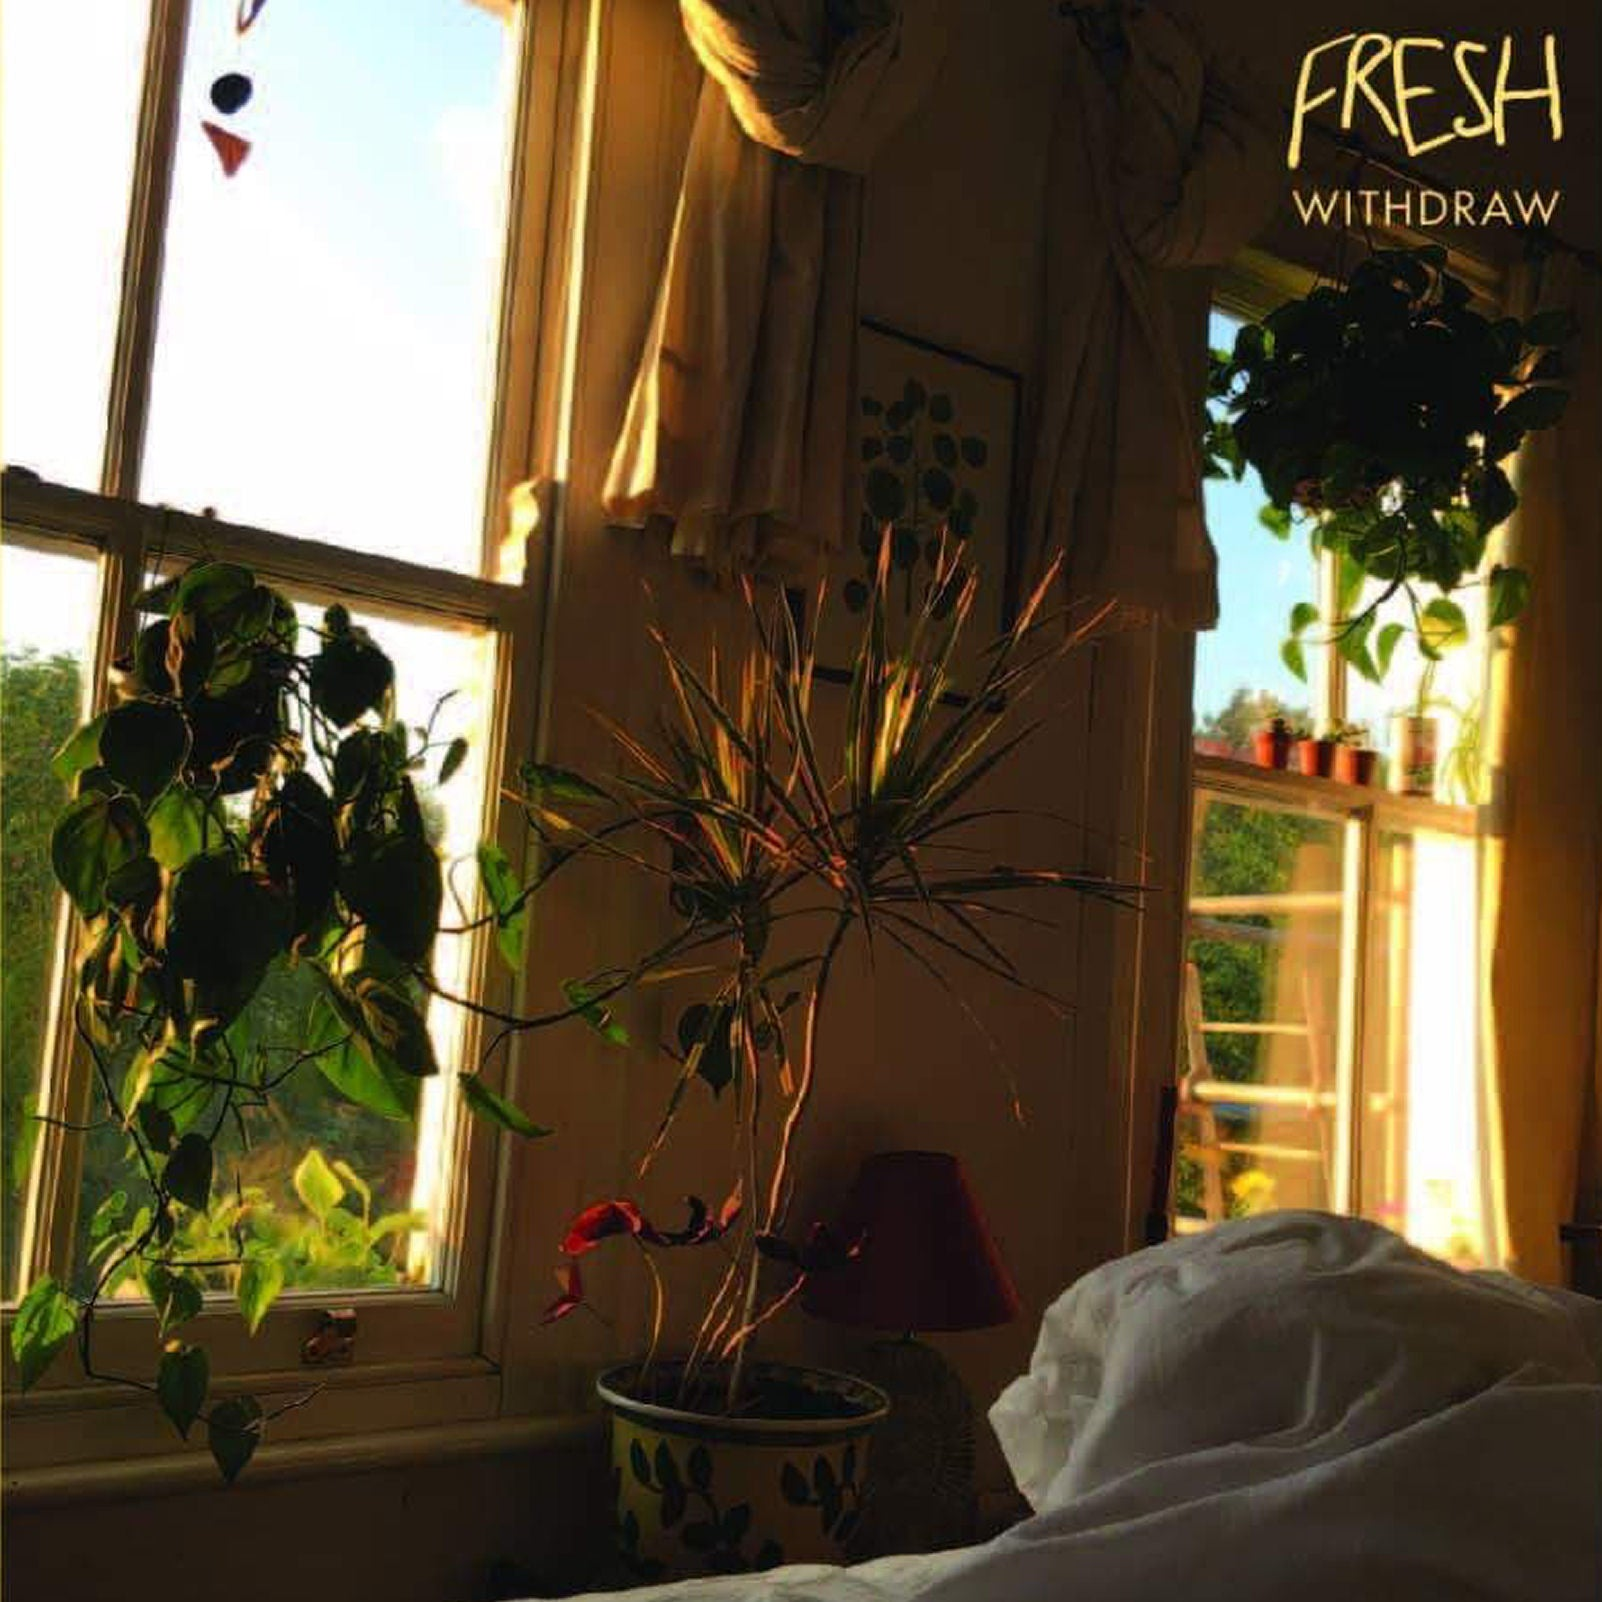 Fresh - Withdraw LP / CD - Vinyl